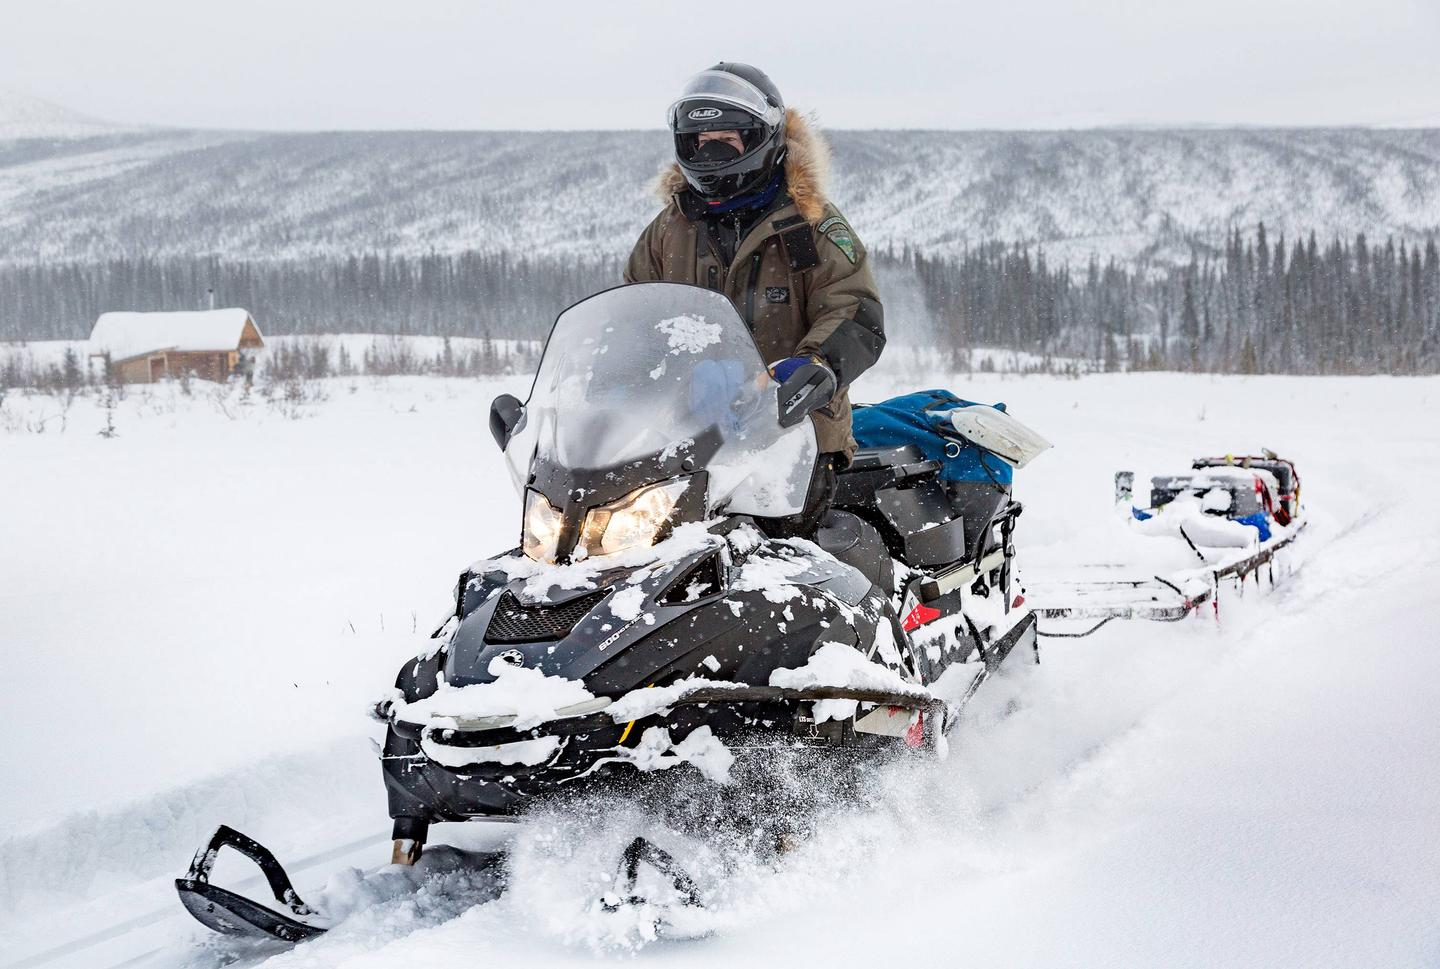 A snowmobiler rides past a log cabin The Bureau of Land Management grooms White Mountains trails throughout the winter, but visitors should still be prepared for the unexpected, including fresh snow, drifts, and cold temperatures.